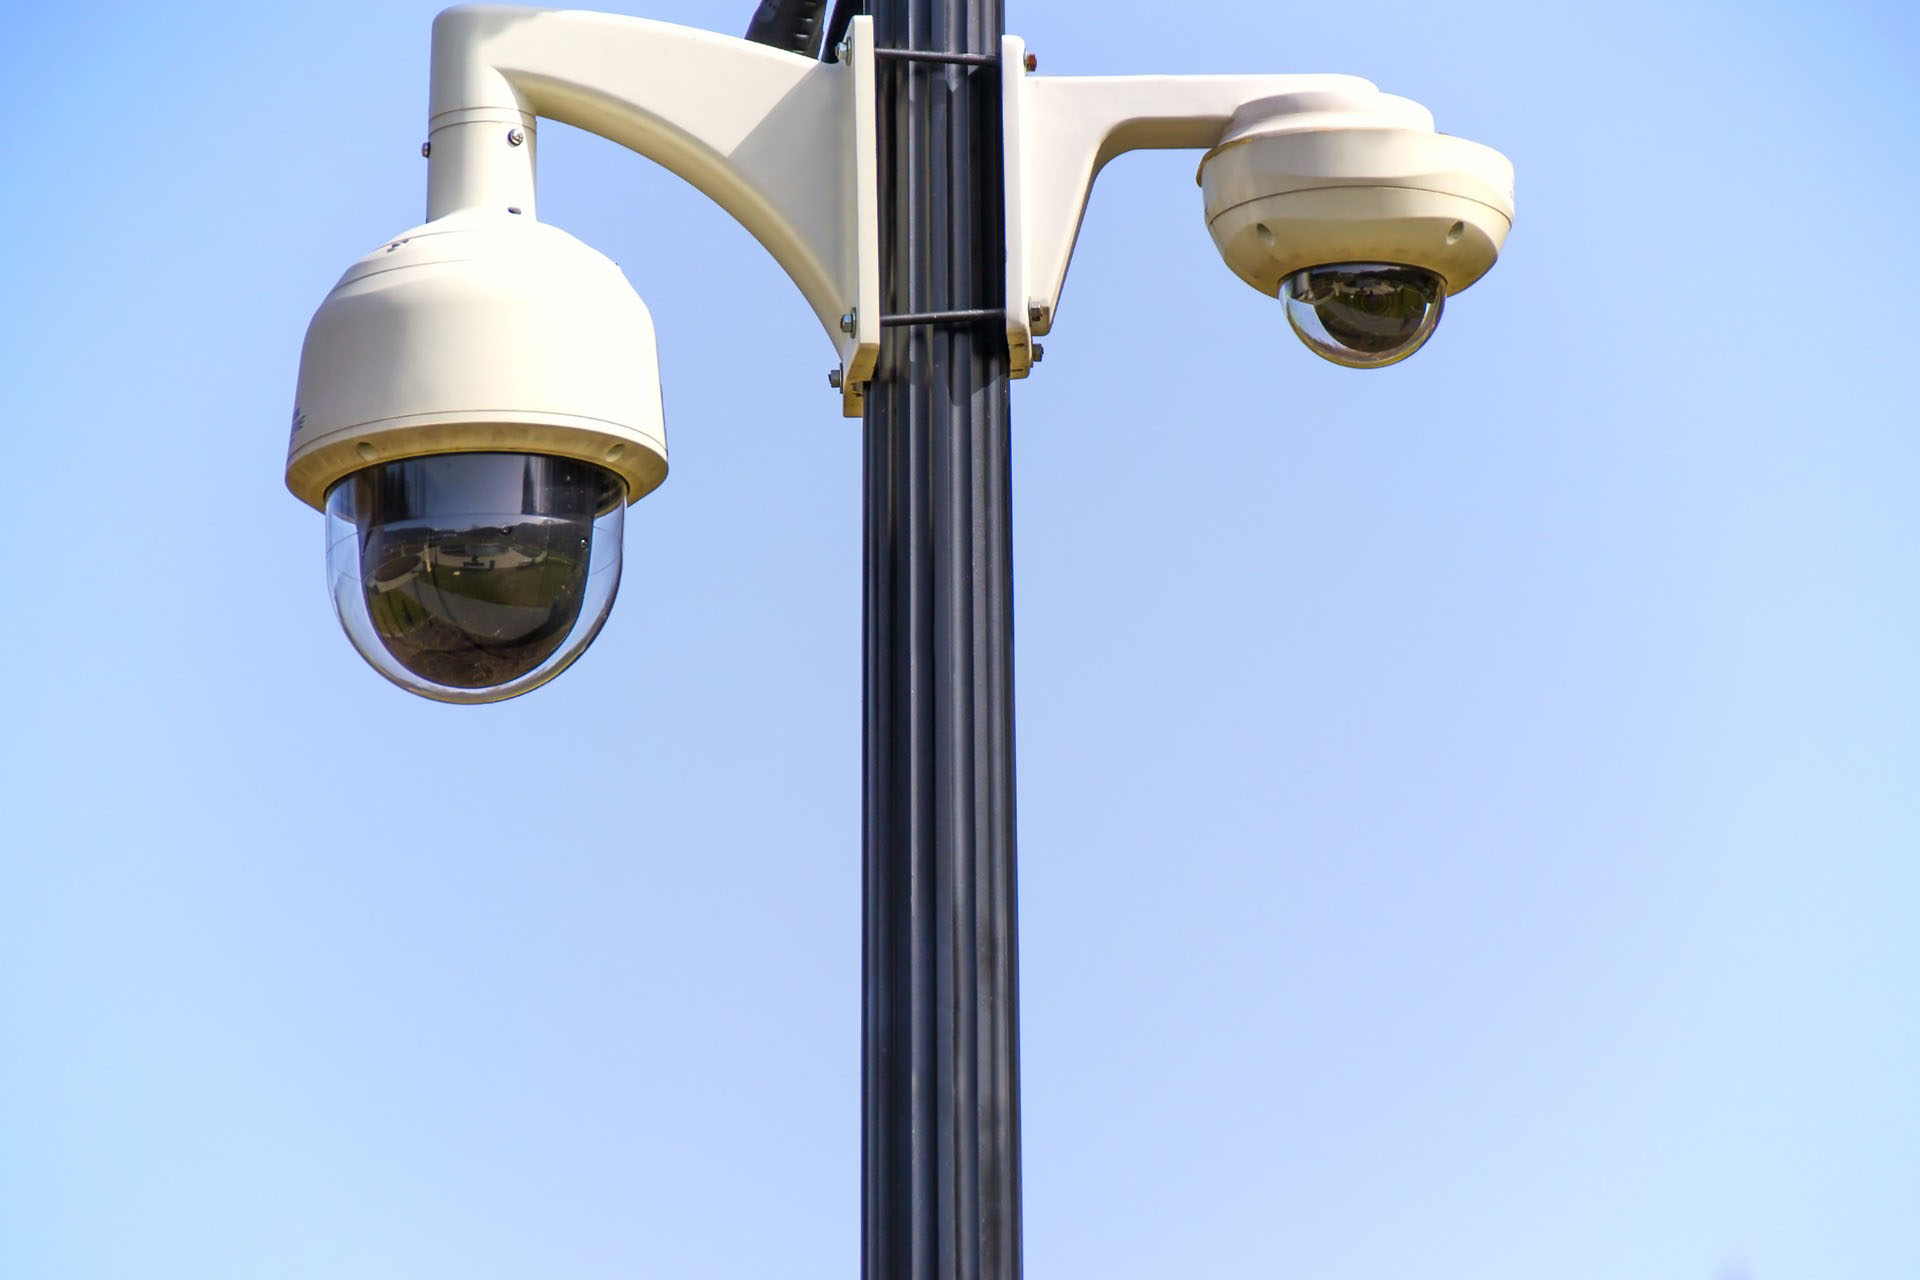 Commercial security camera installation service in Richgrove